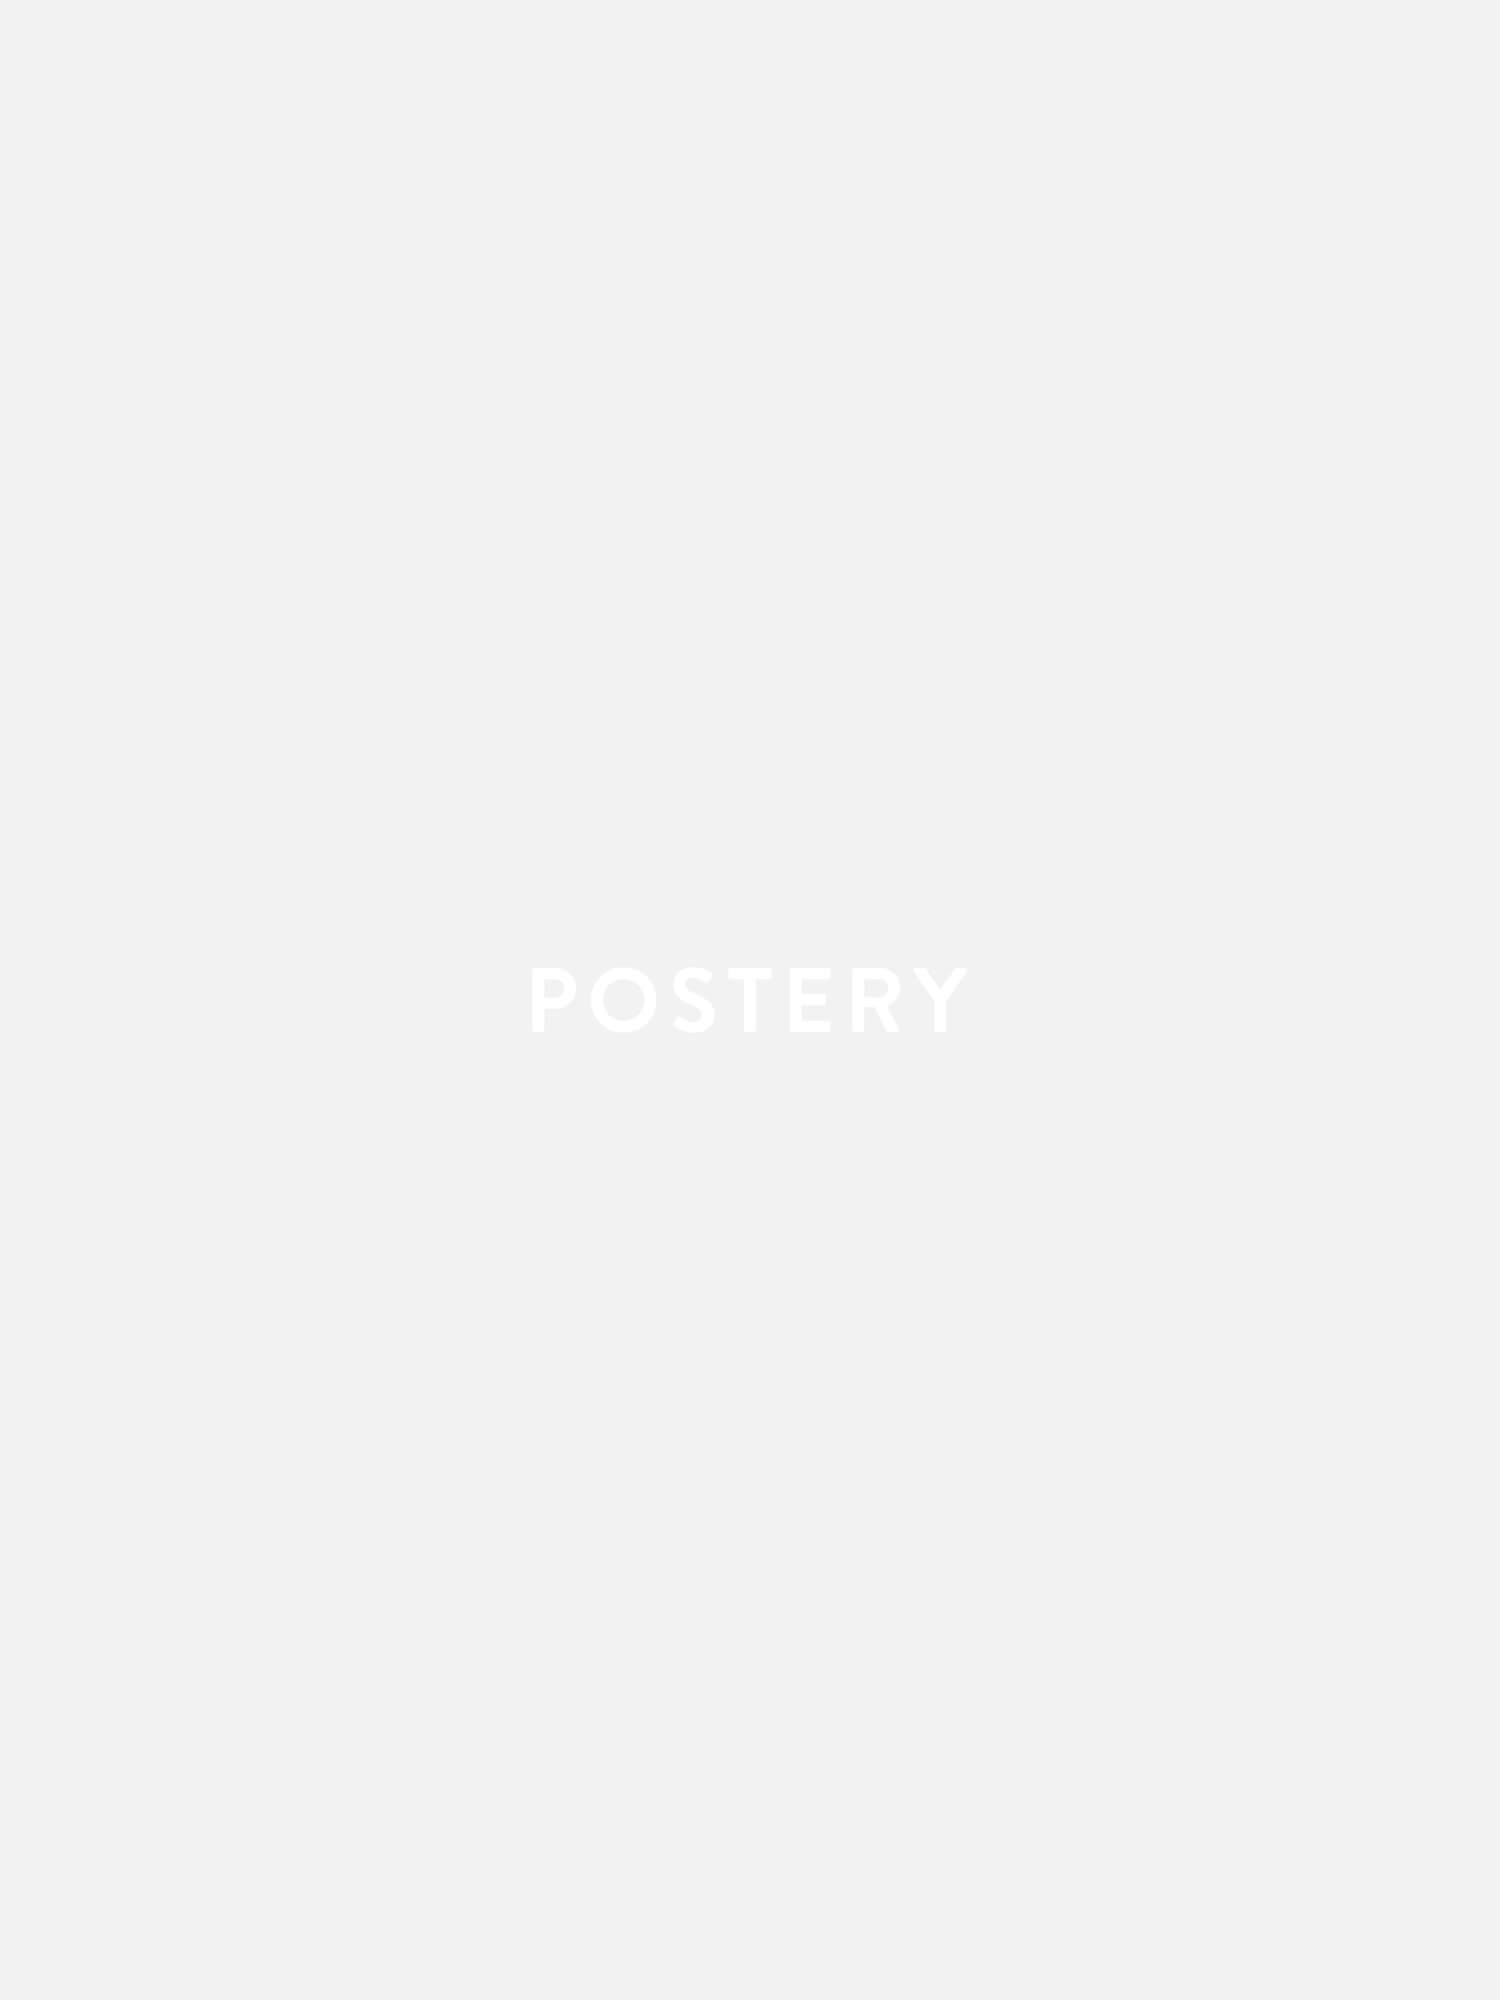 Elephant in Profile Poster